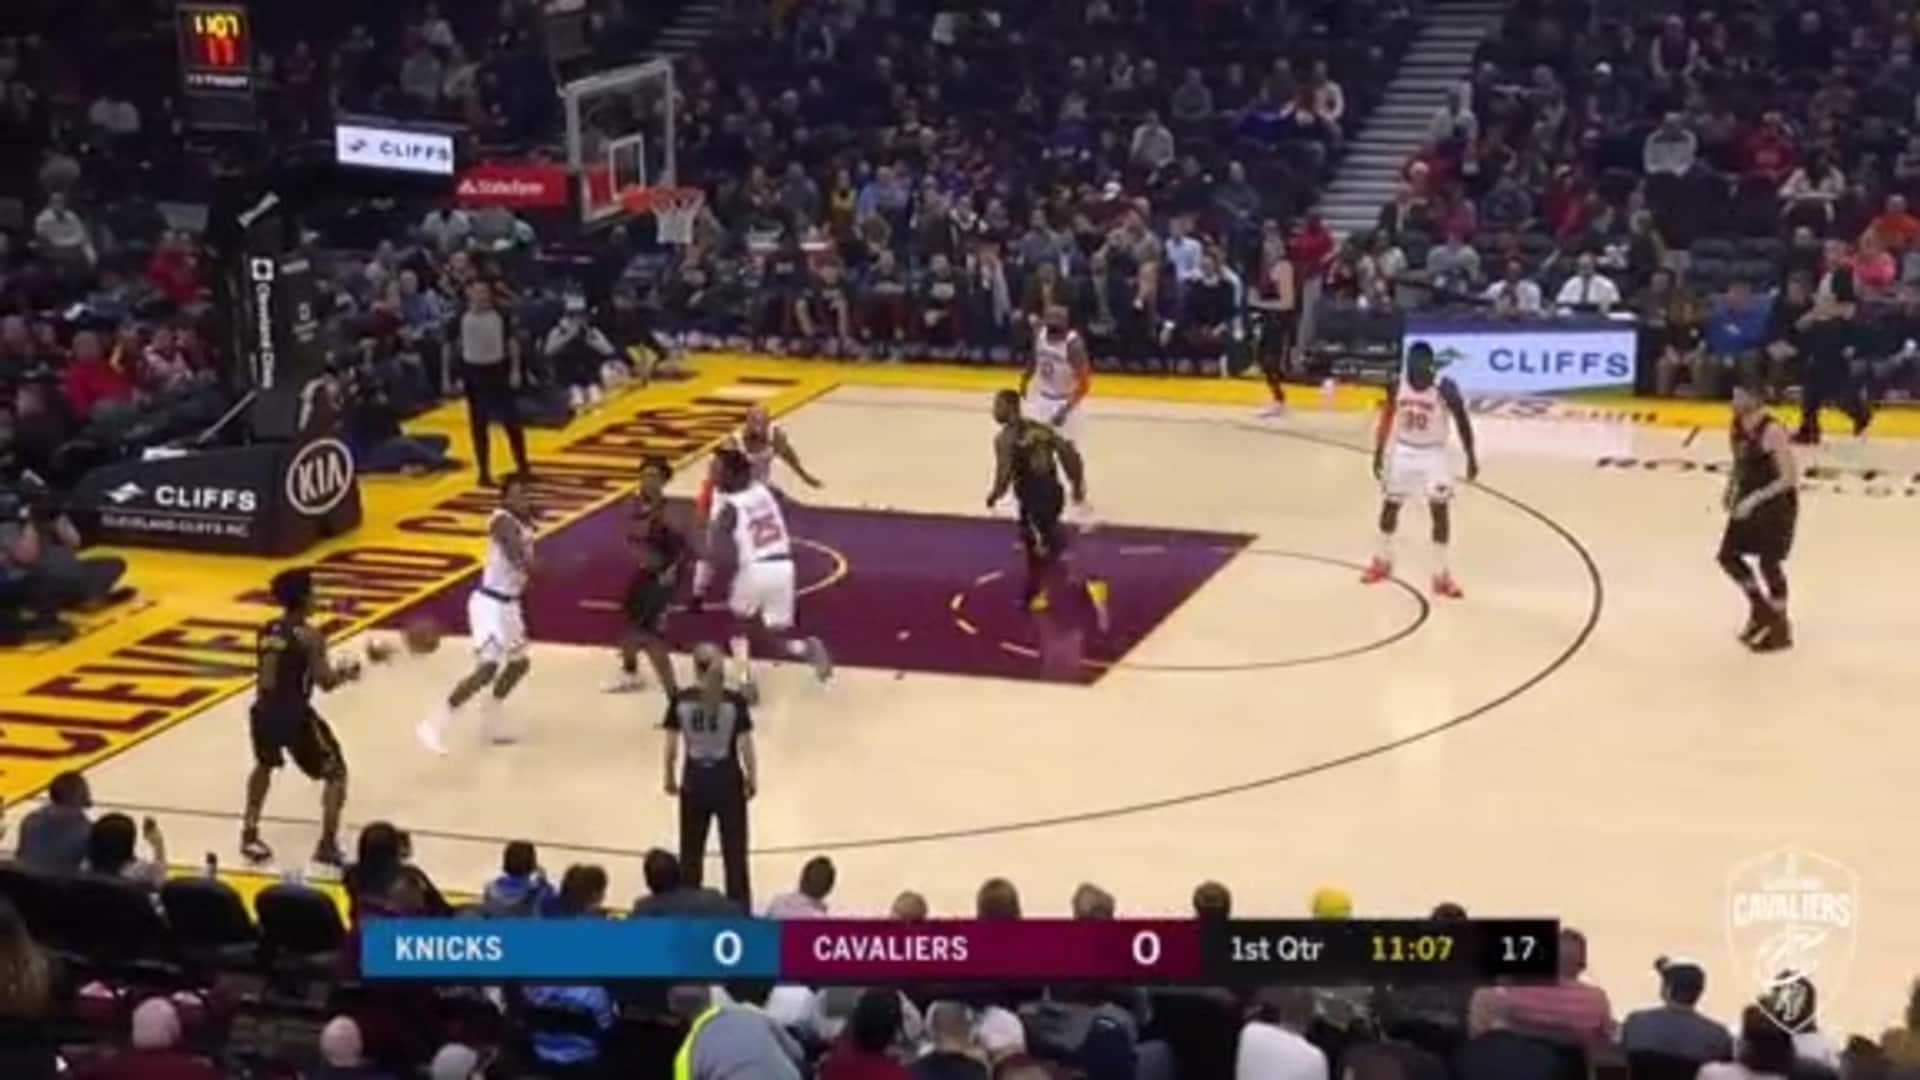 Sexton Gets Insides & Hits Tough Lay-Up